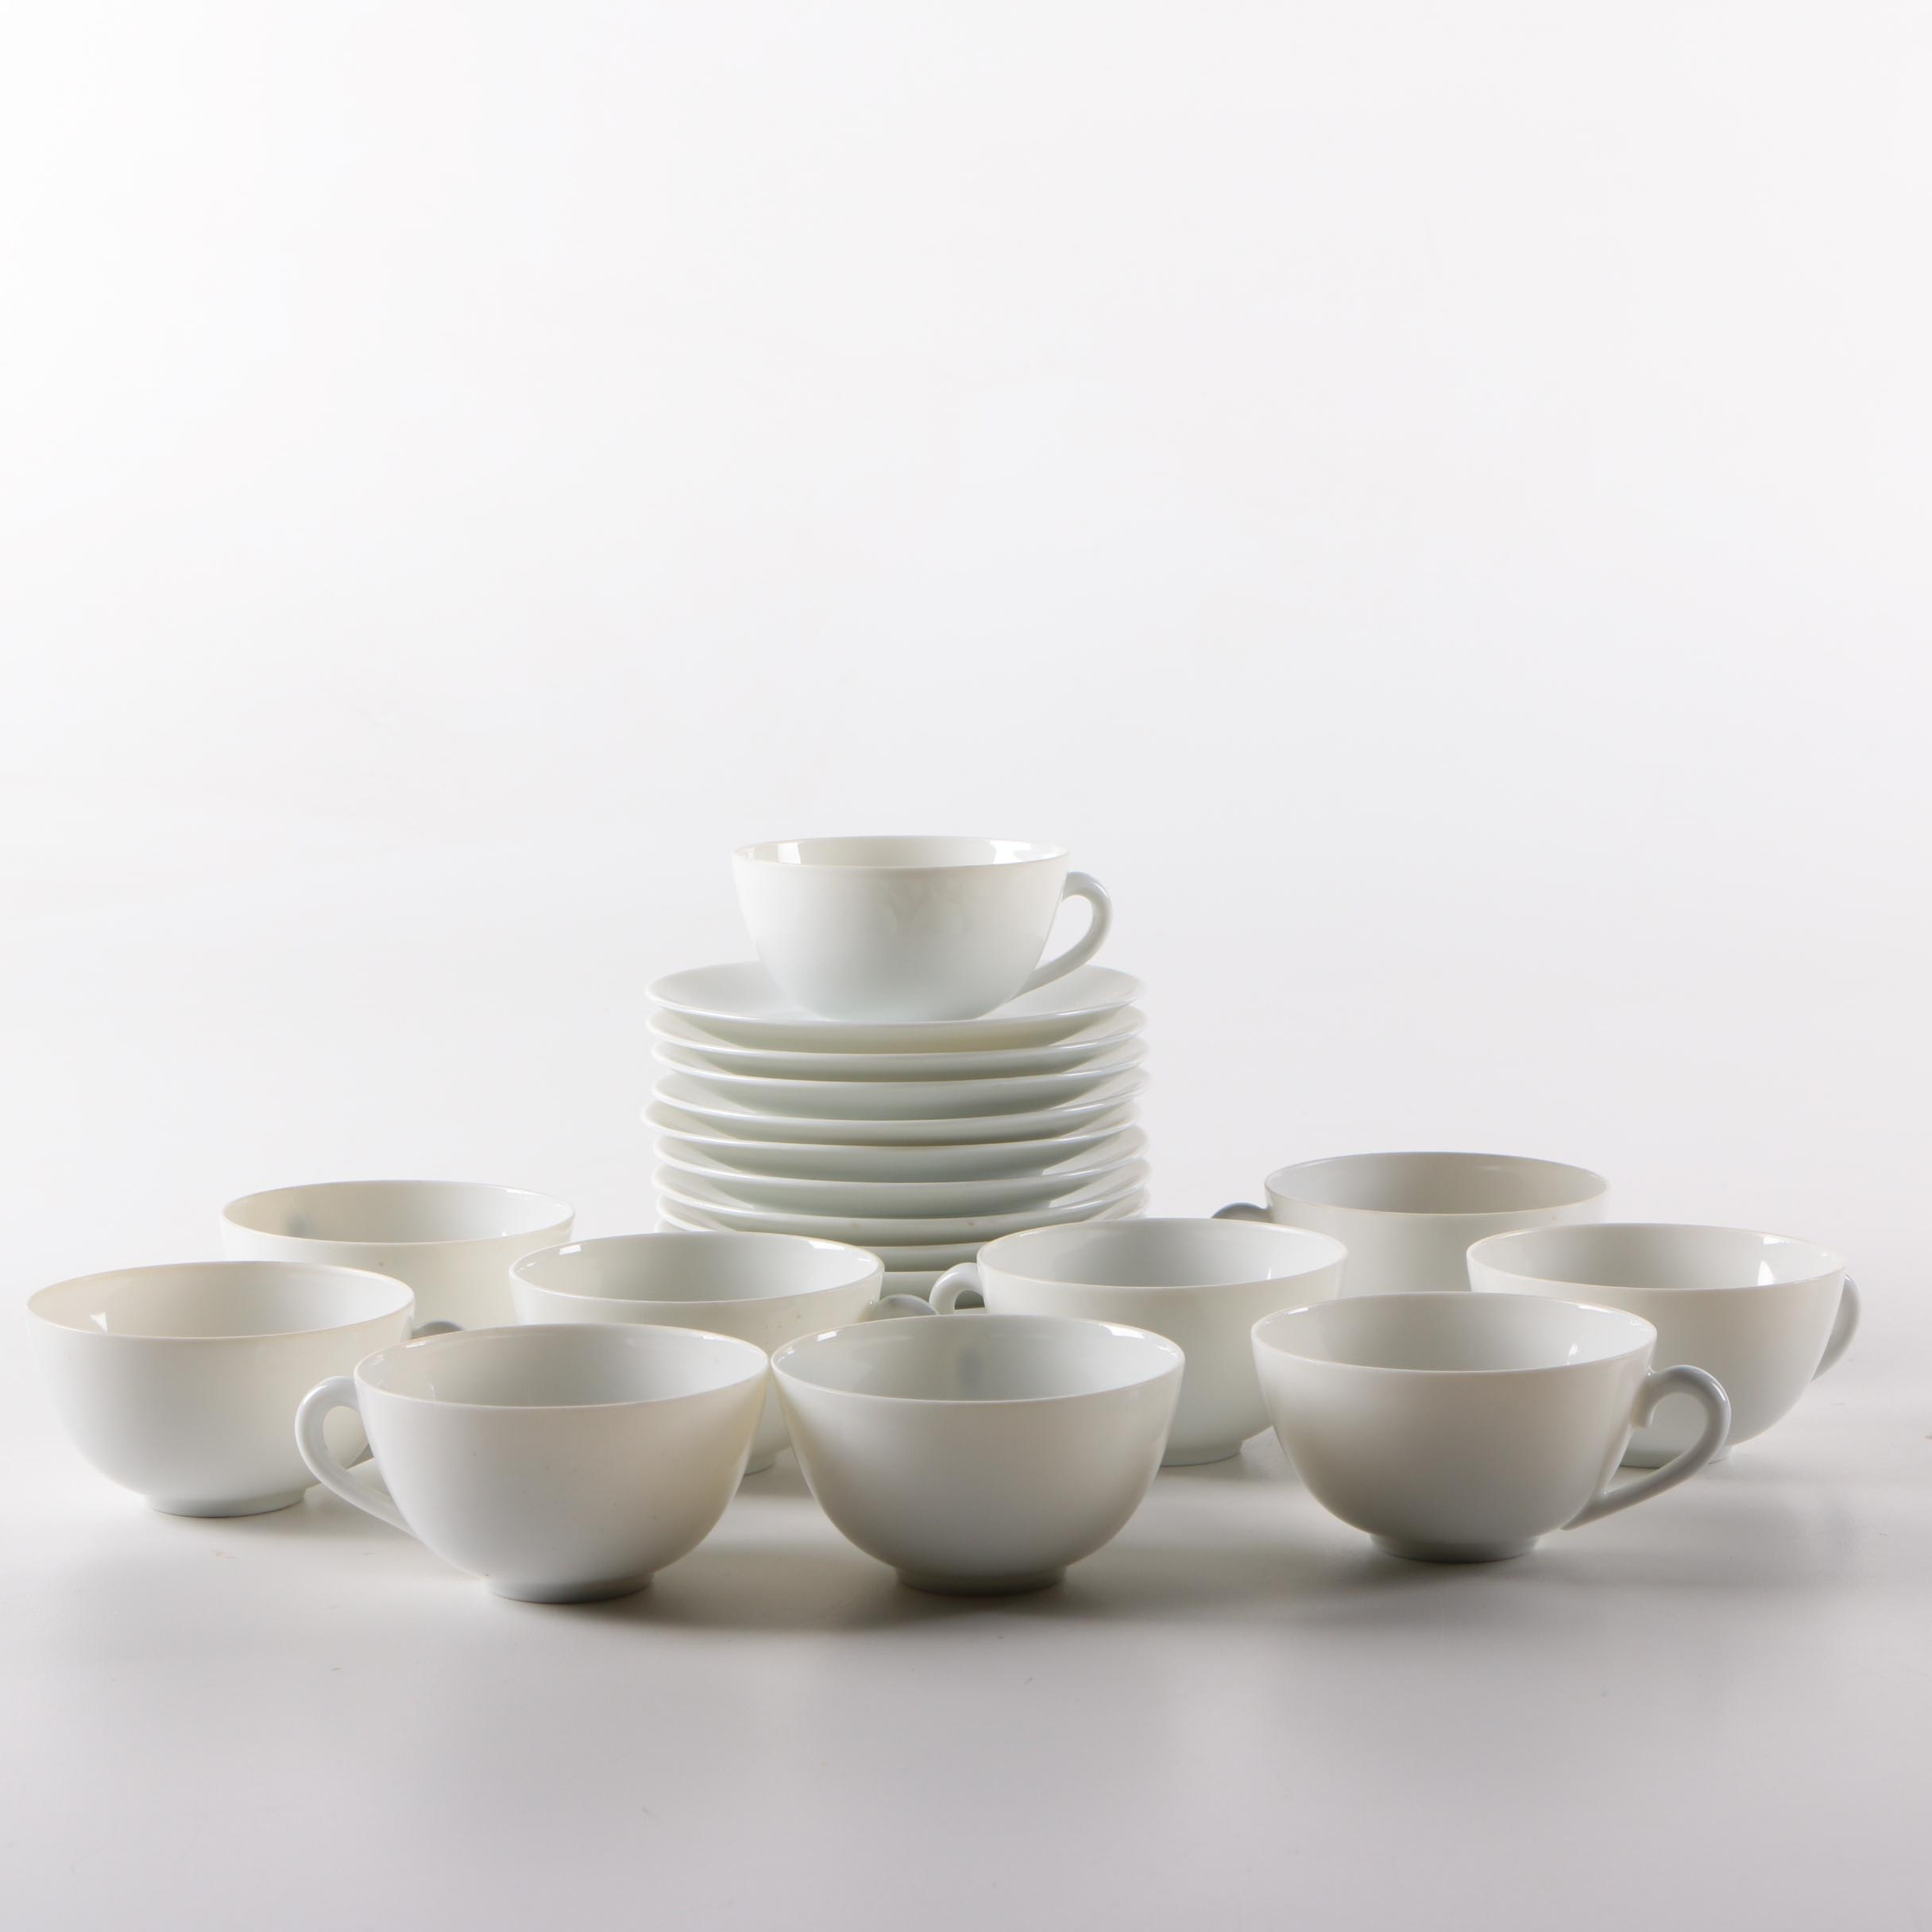 Vintage Epiag Tea Cups and Saucers